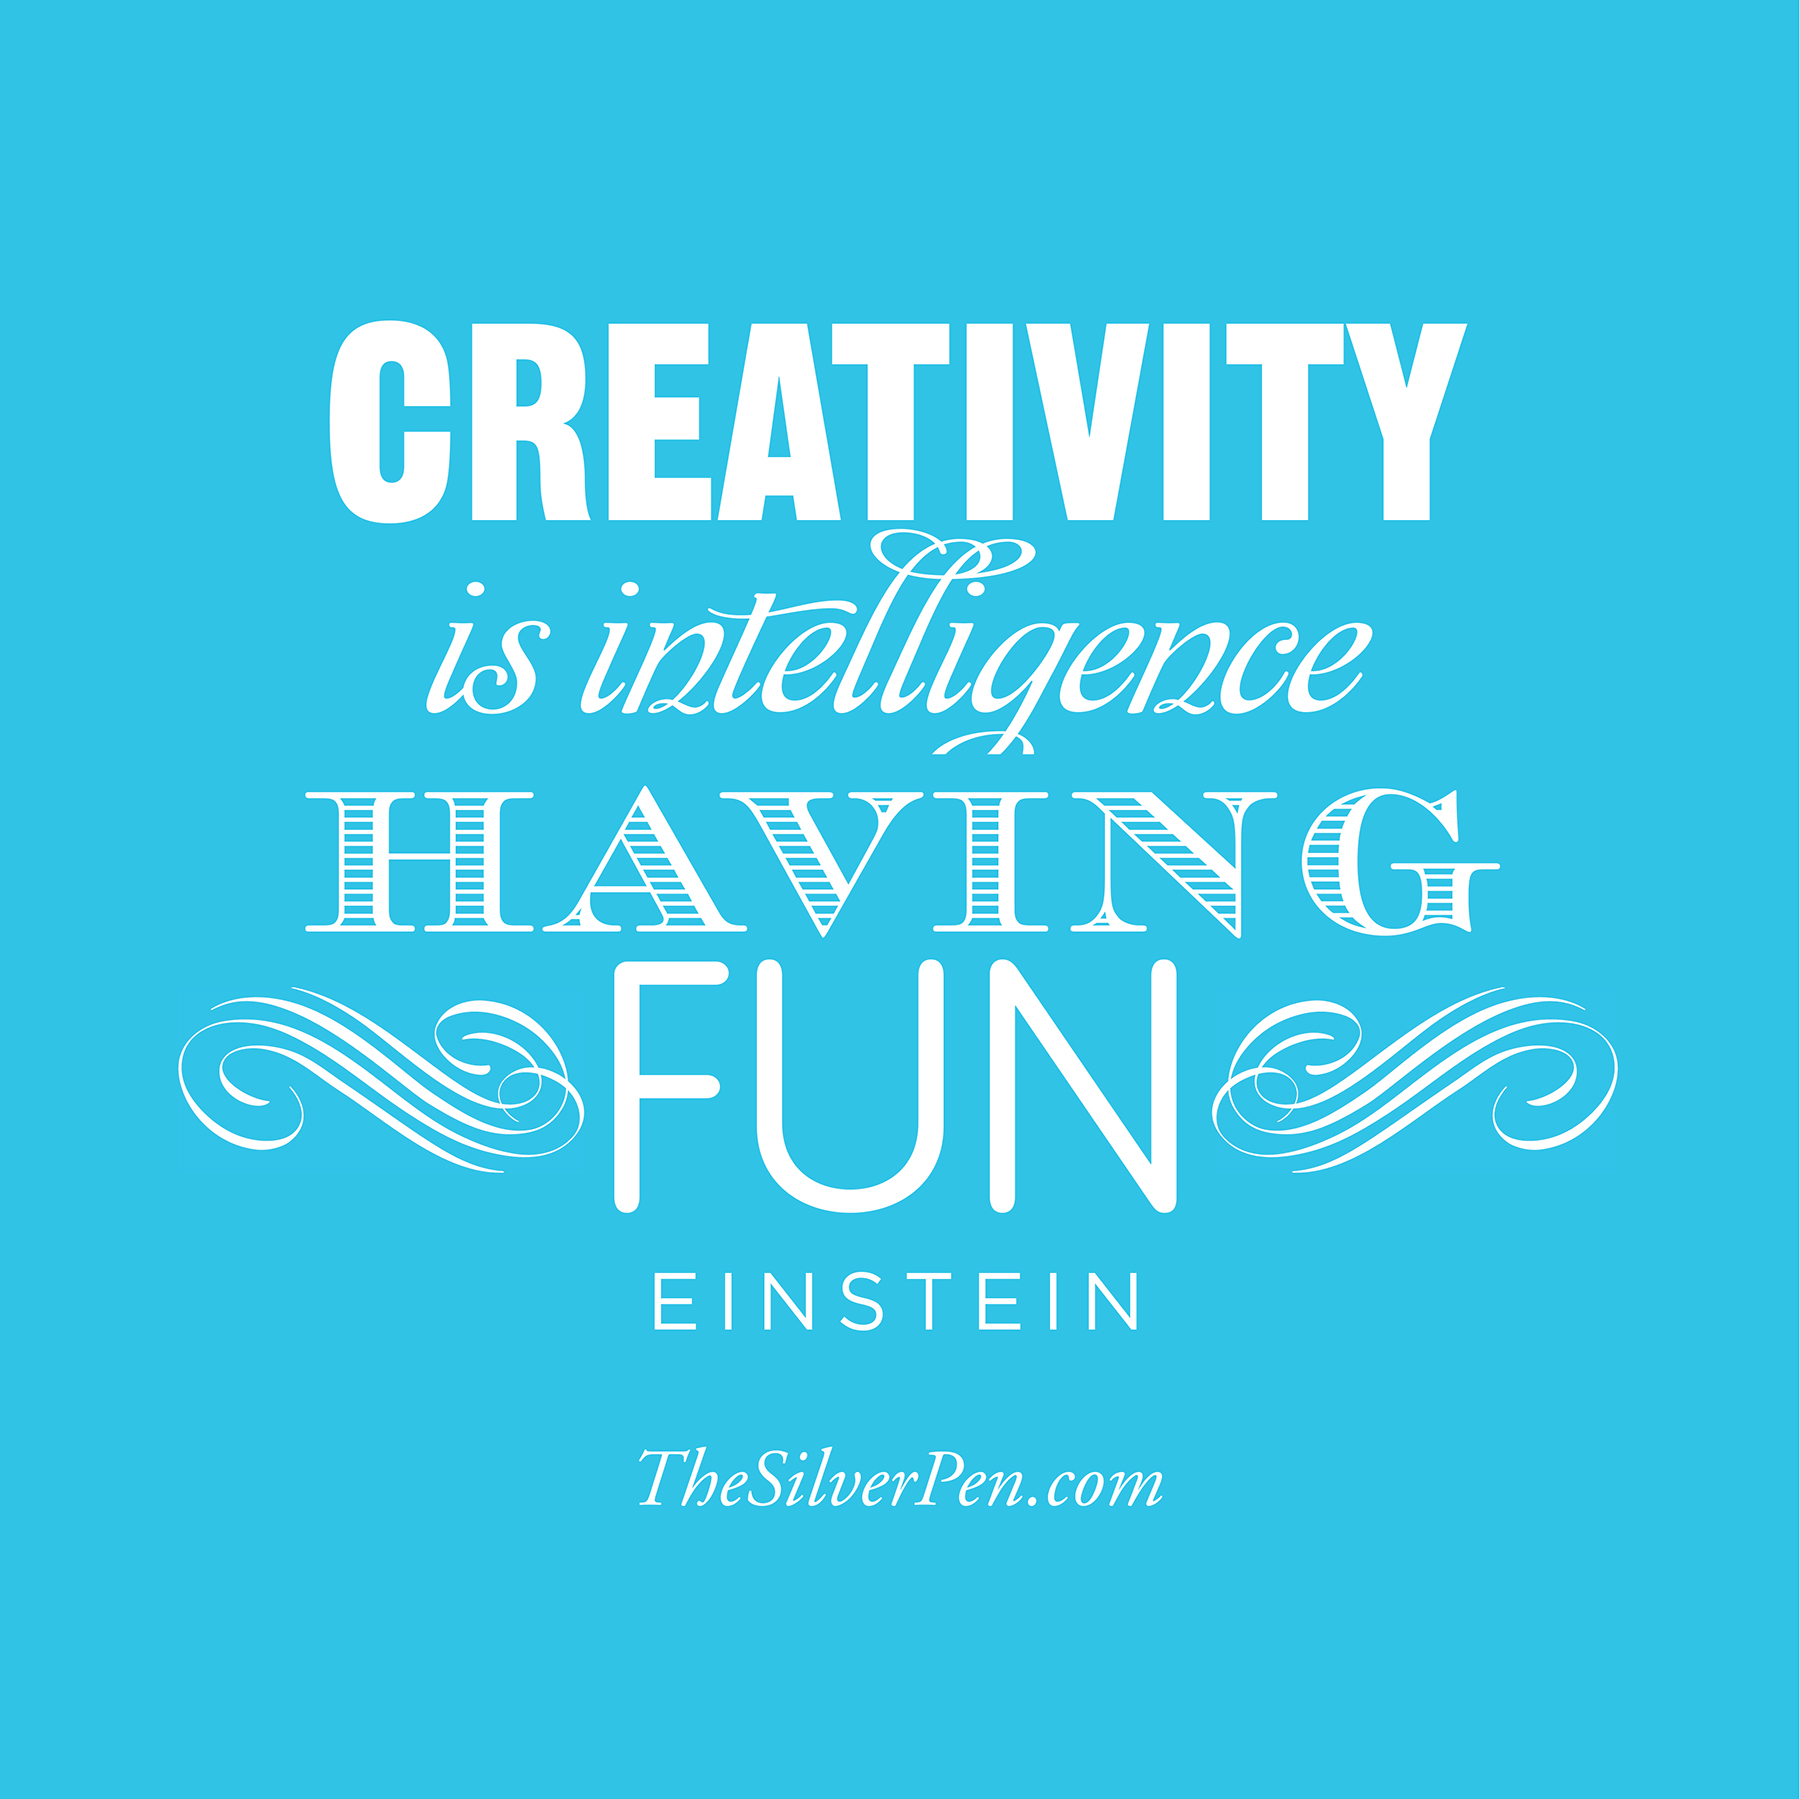 Best Creative Quotes: Einstein Creativity And Intelligence Quotes. QuotesGram